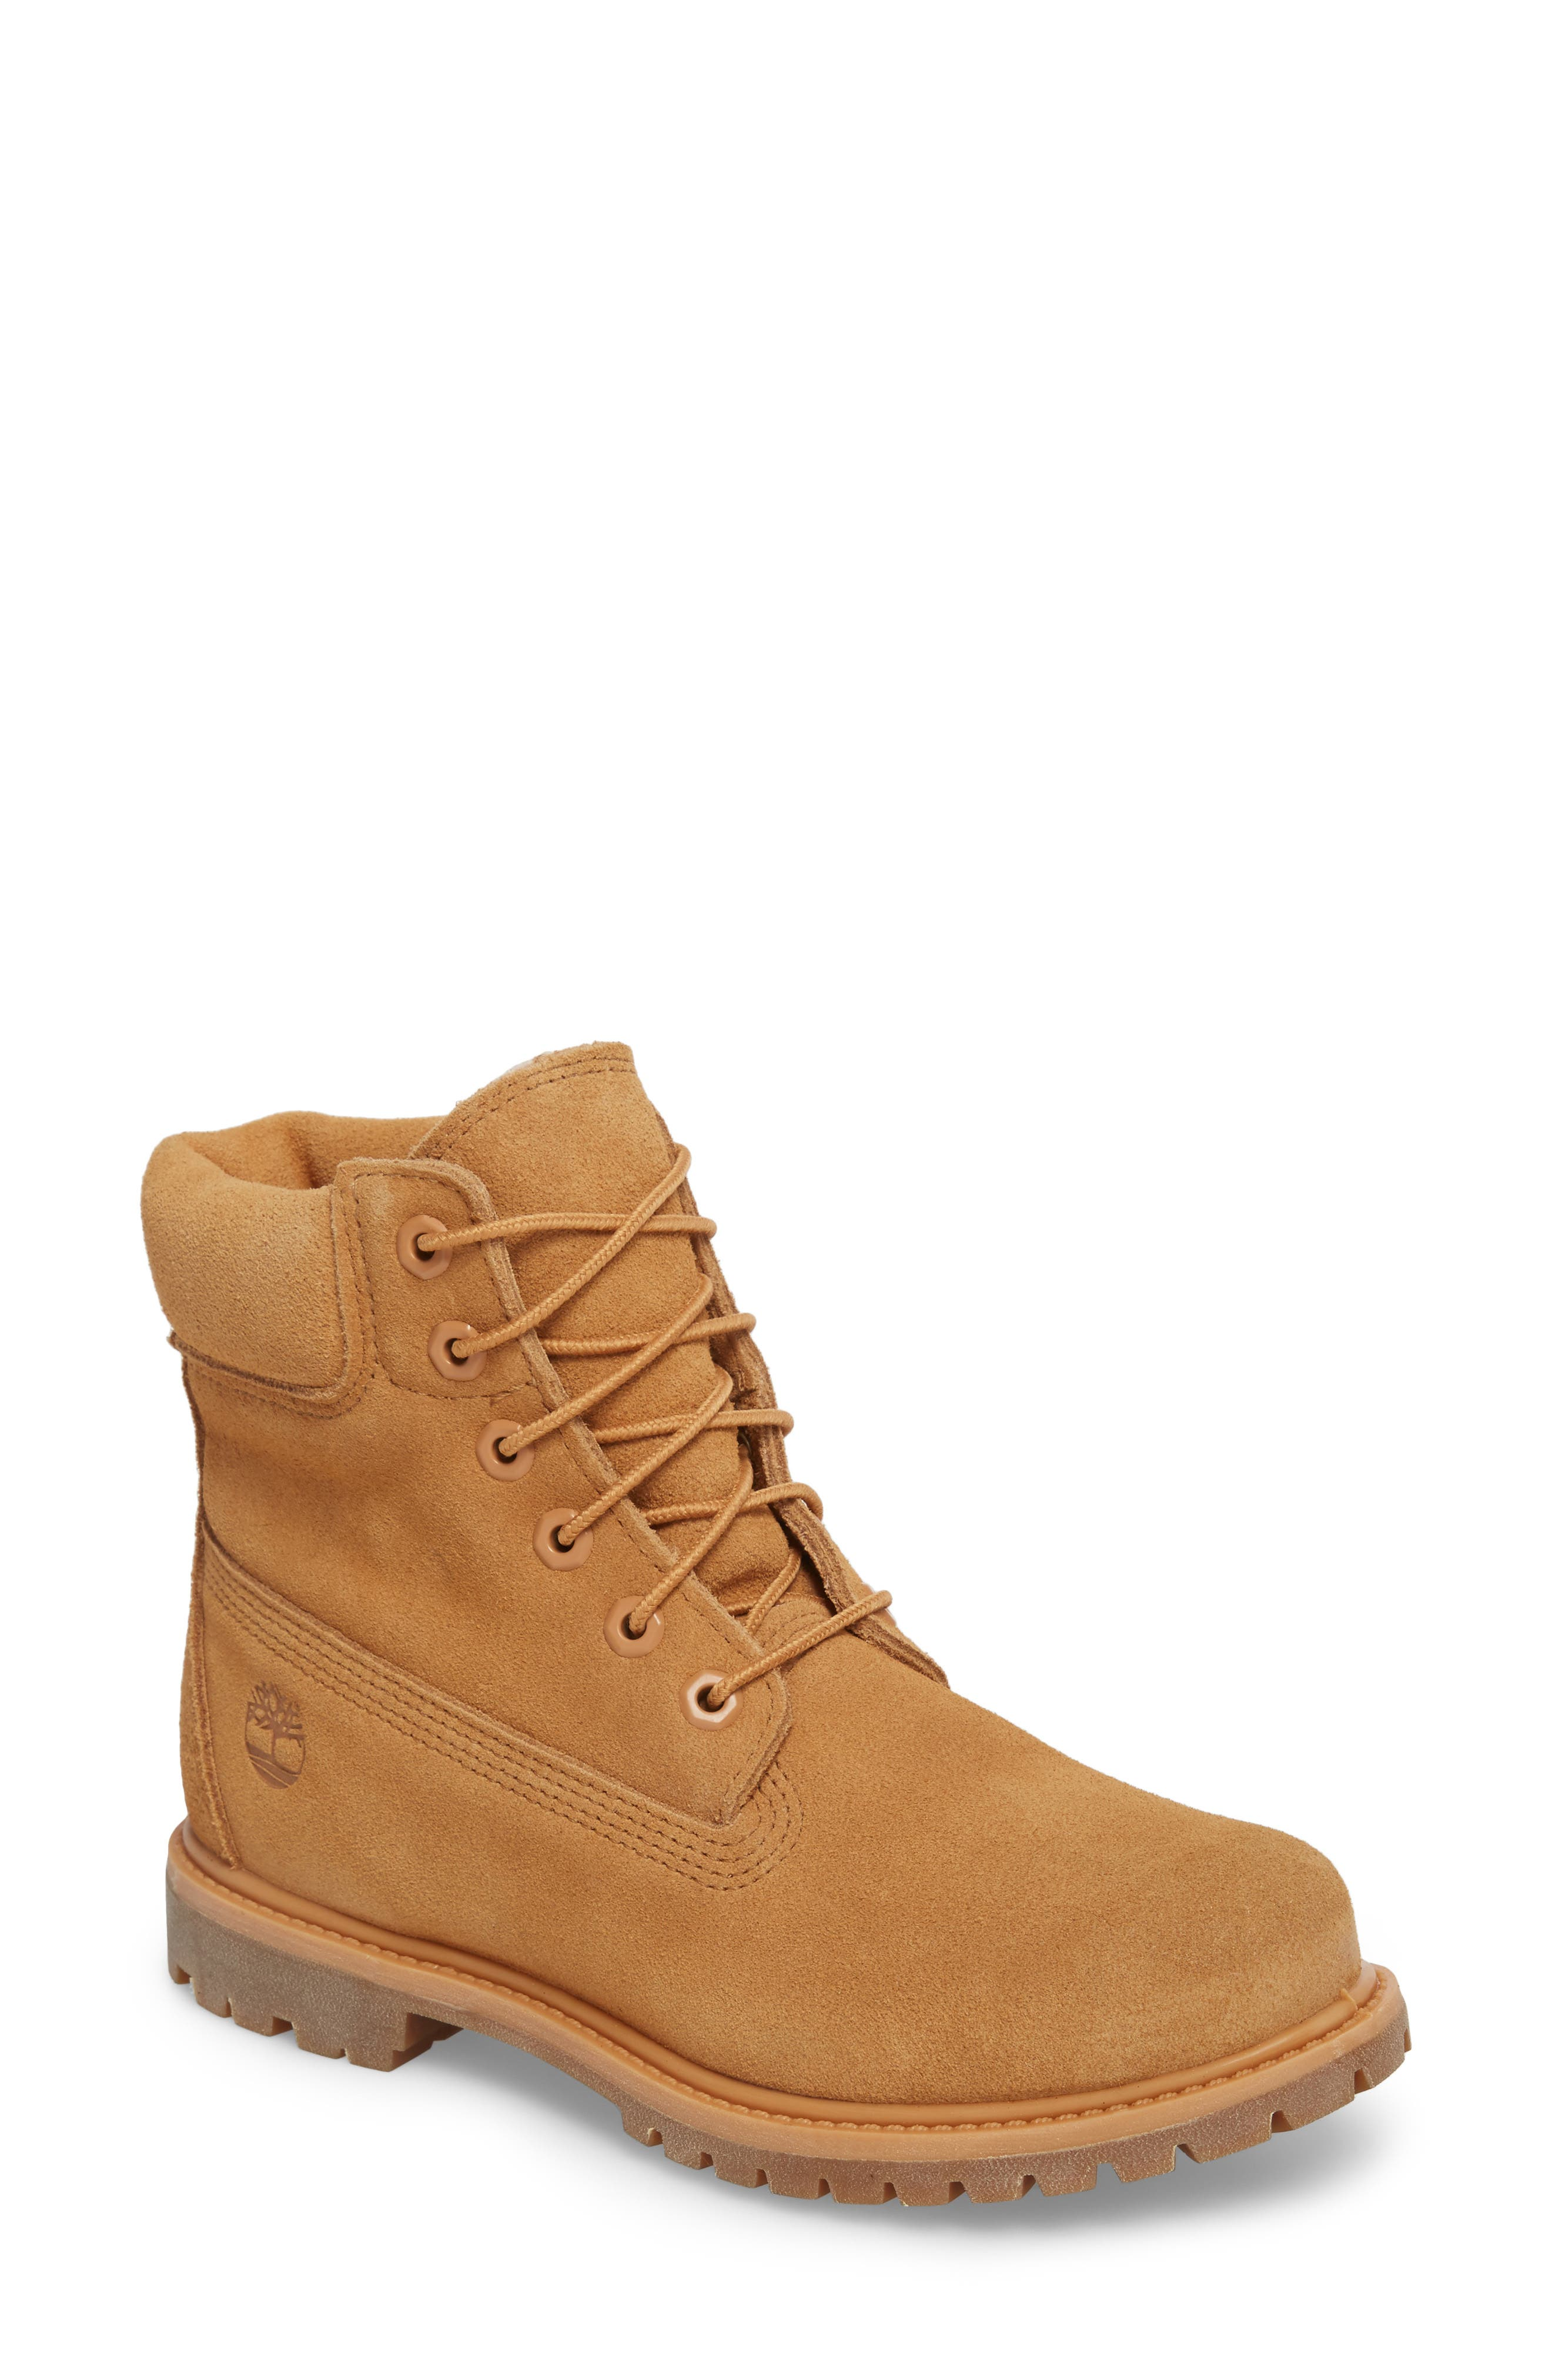 6 Inch Boot,                             Main thumbnail 1, color,                             Biscuit Nubuck Leather